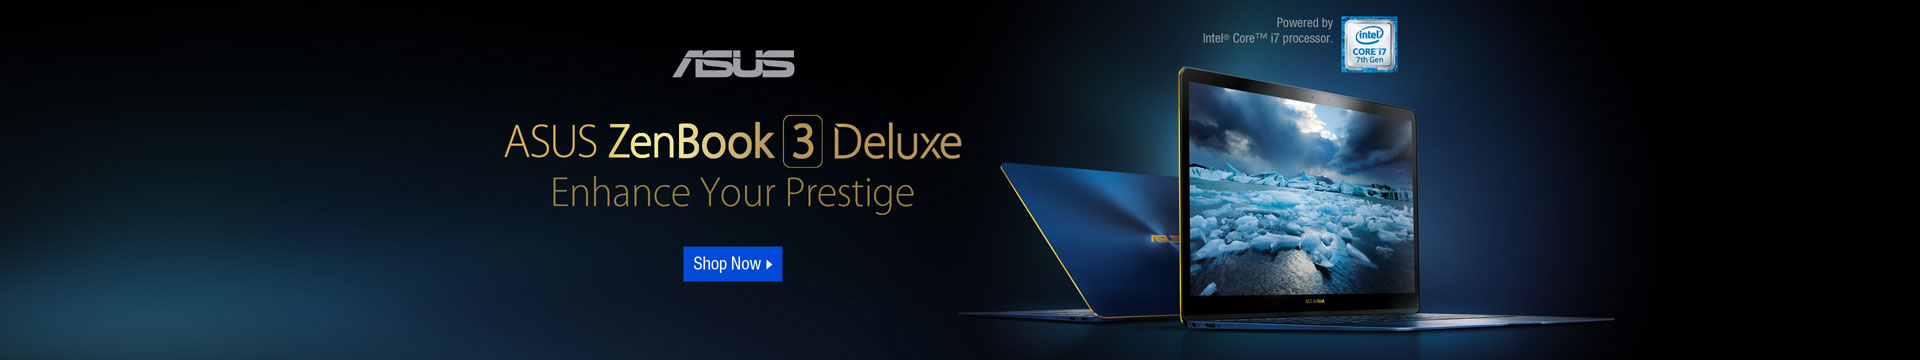 ASUS ZENBOOK 3 DELUXE ENHANCE YOUR PRESTIGE